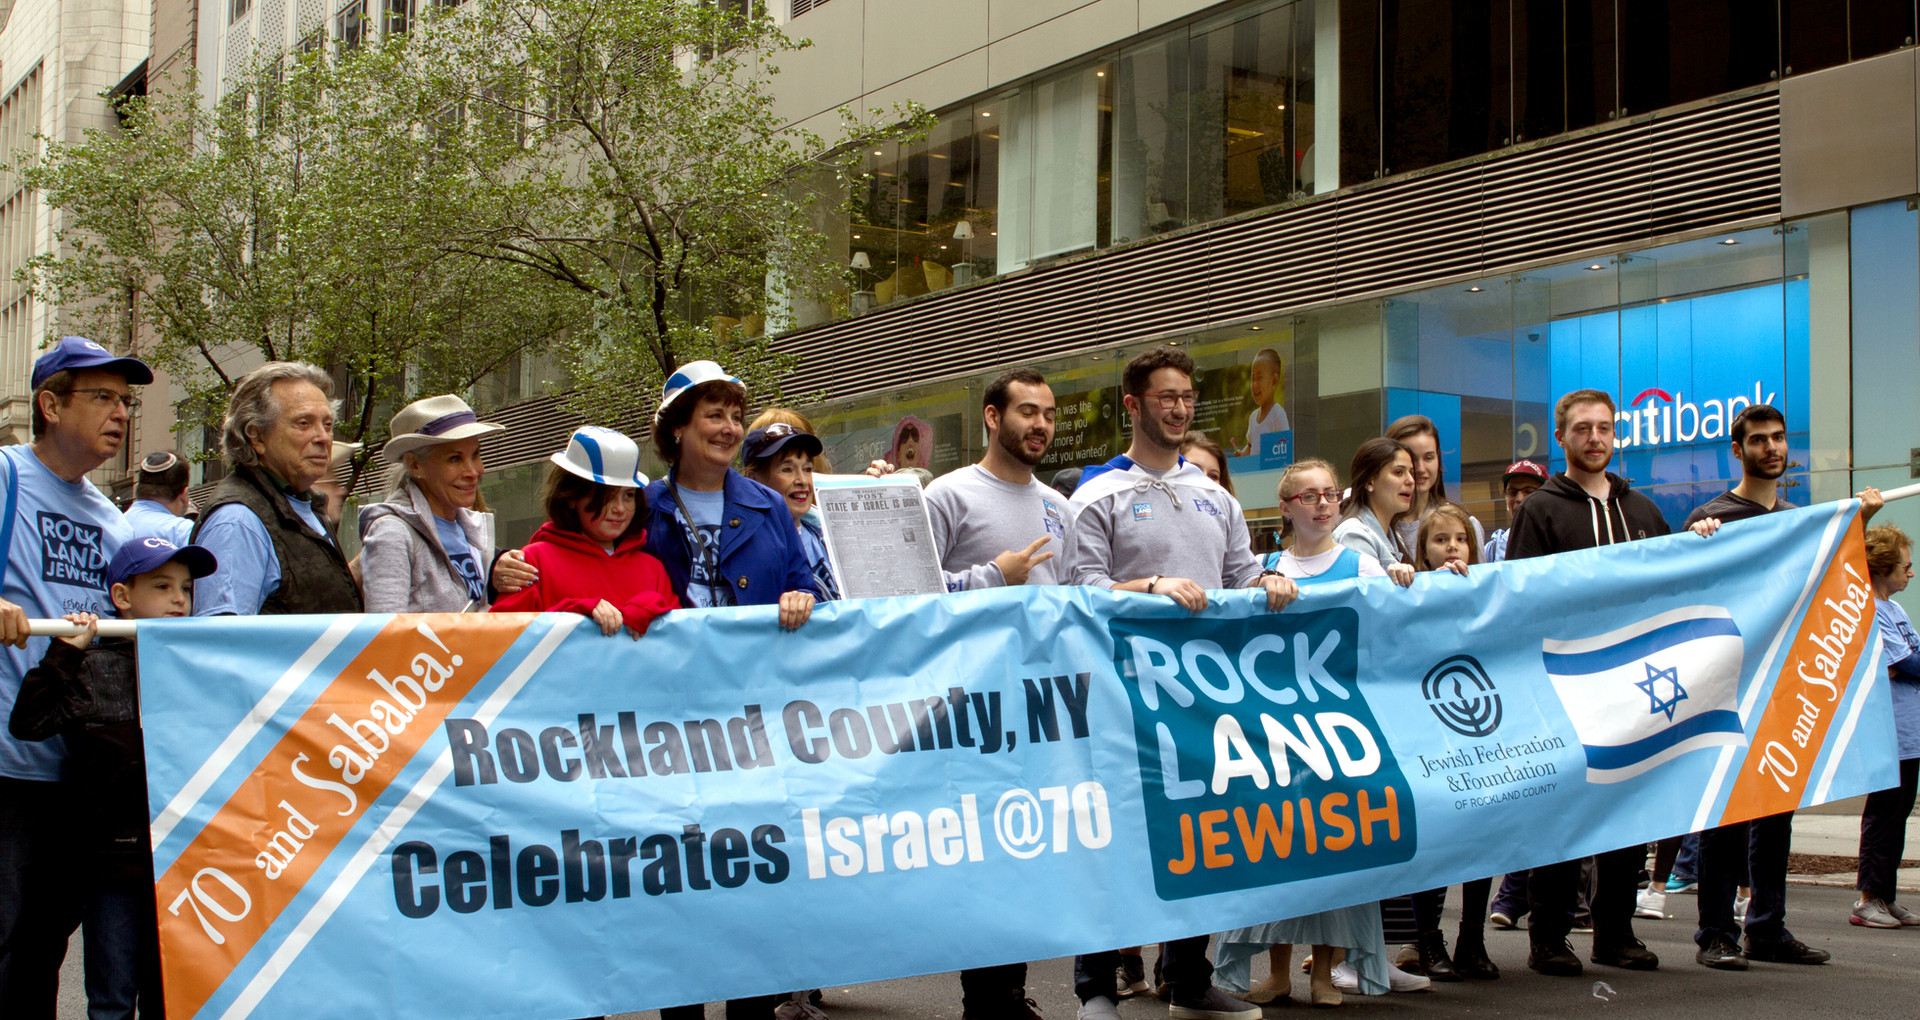 Rockland parade marchers with branded banner